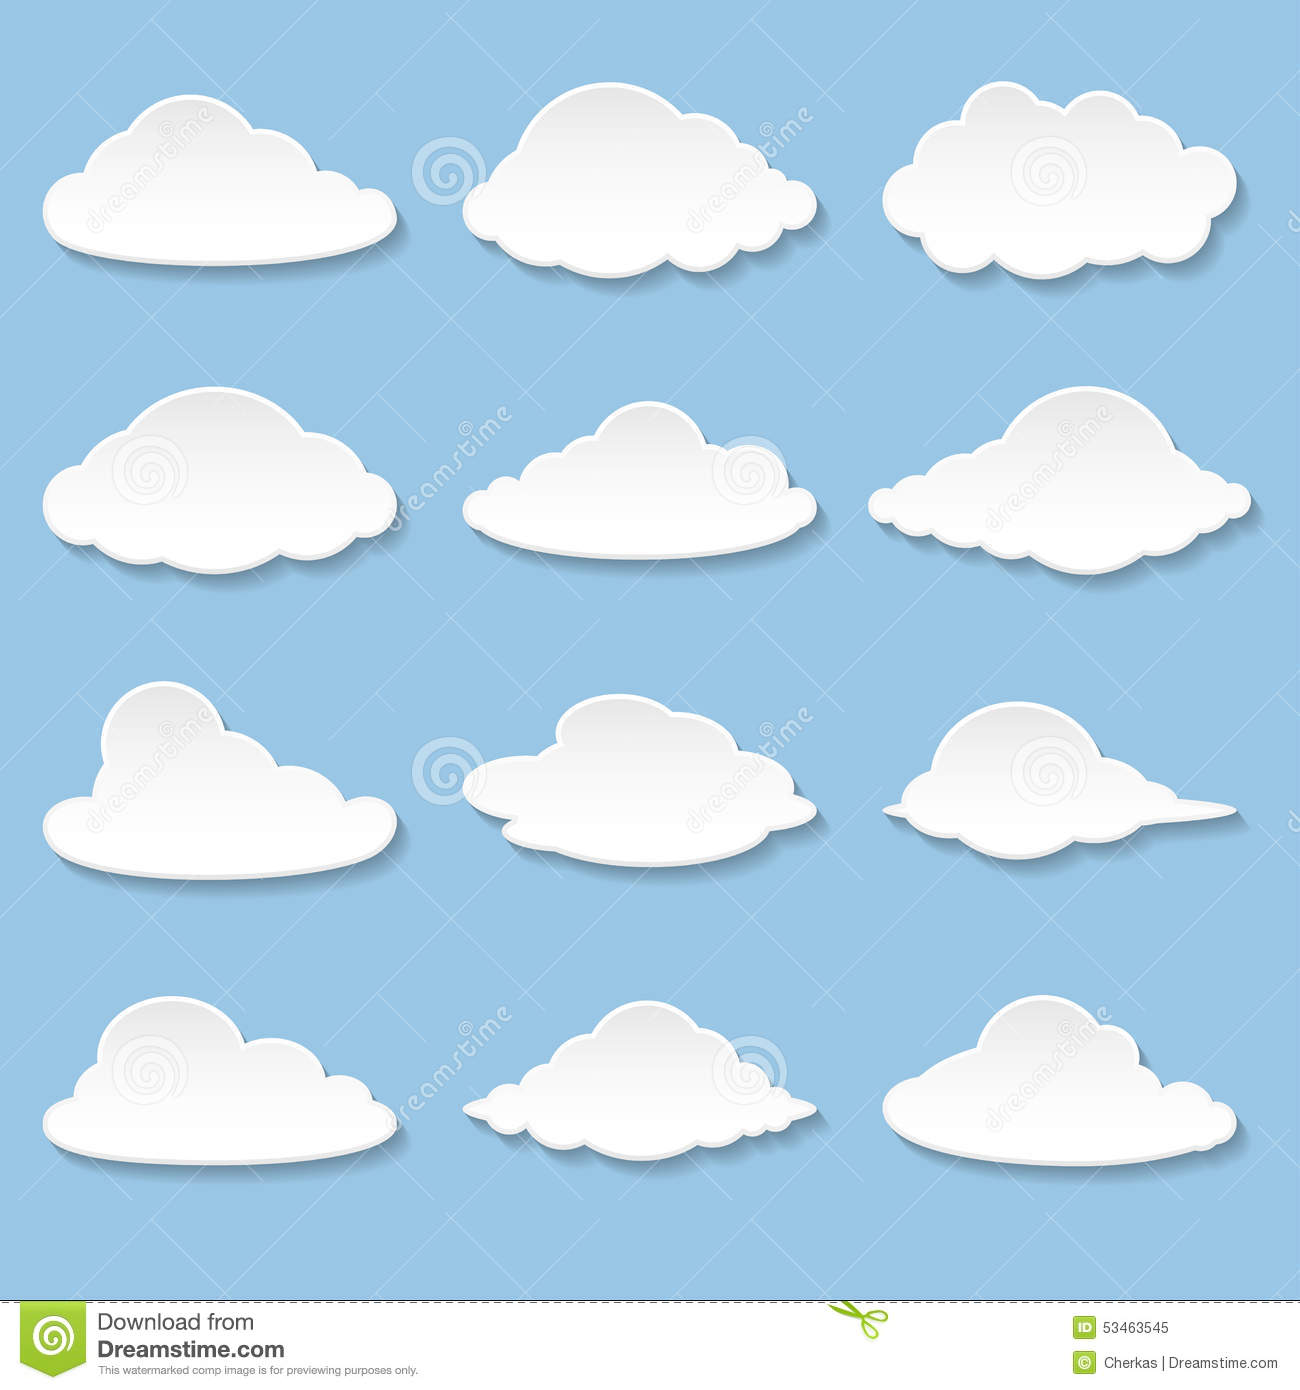 Messages In The Form Of Clouds Stock Vector.